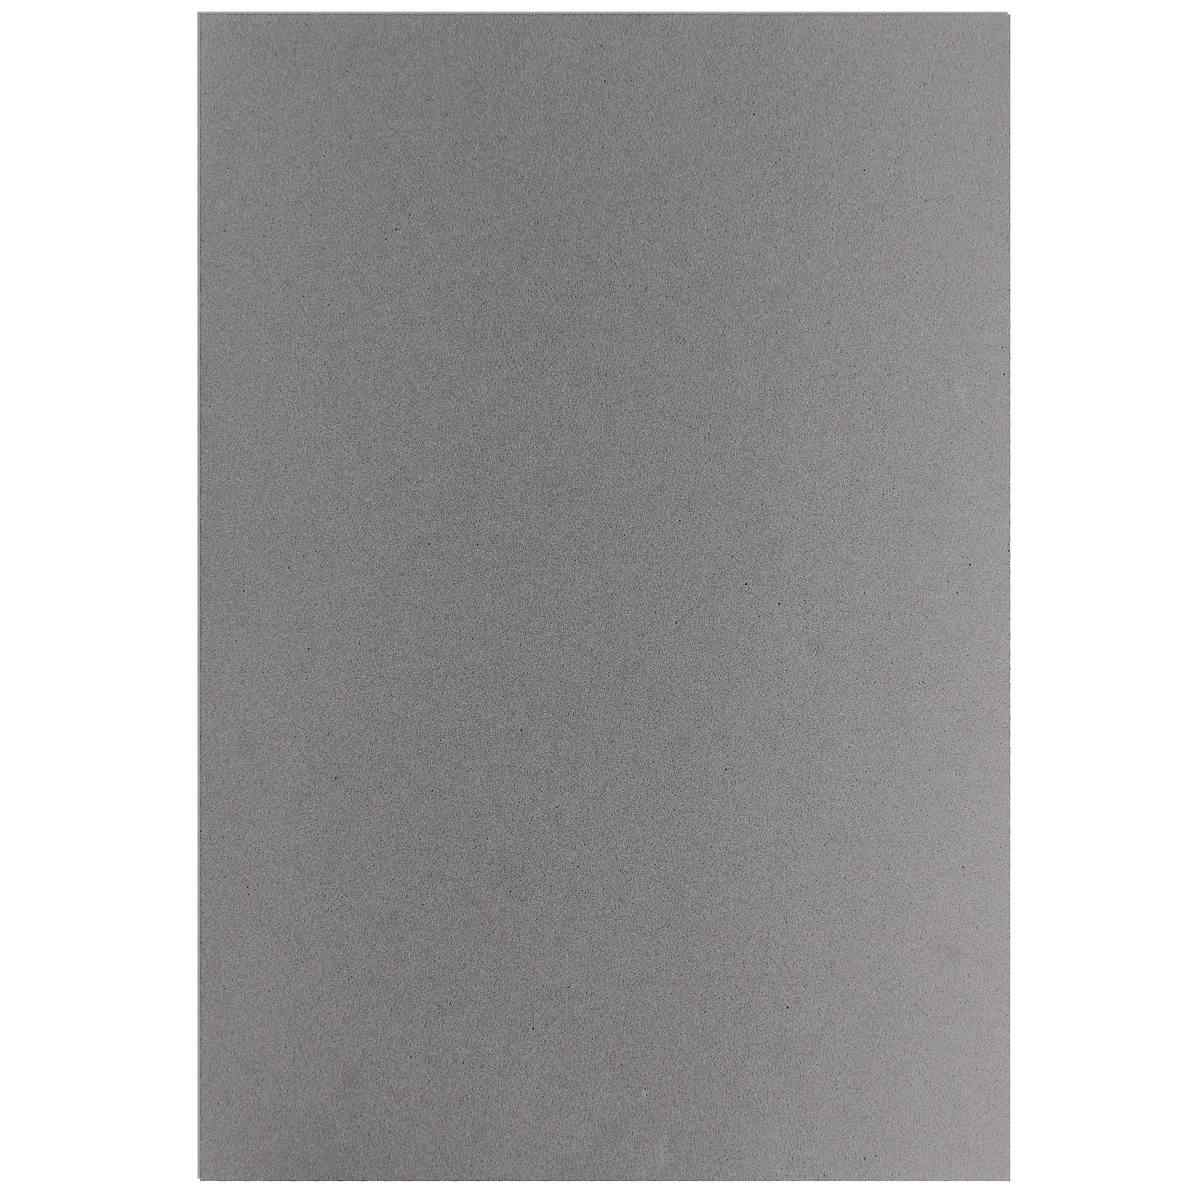 Foam Sheets A4 Size Without Sticker 3MM Grey